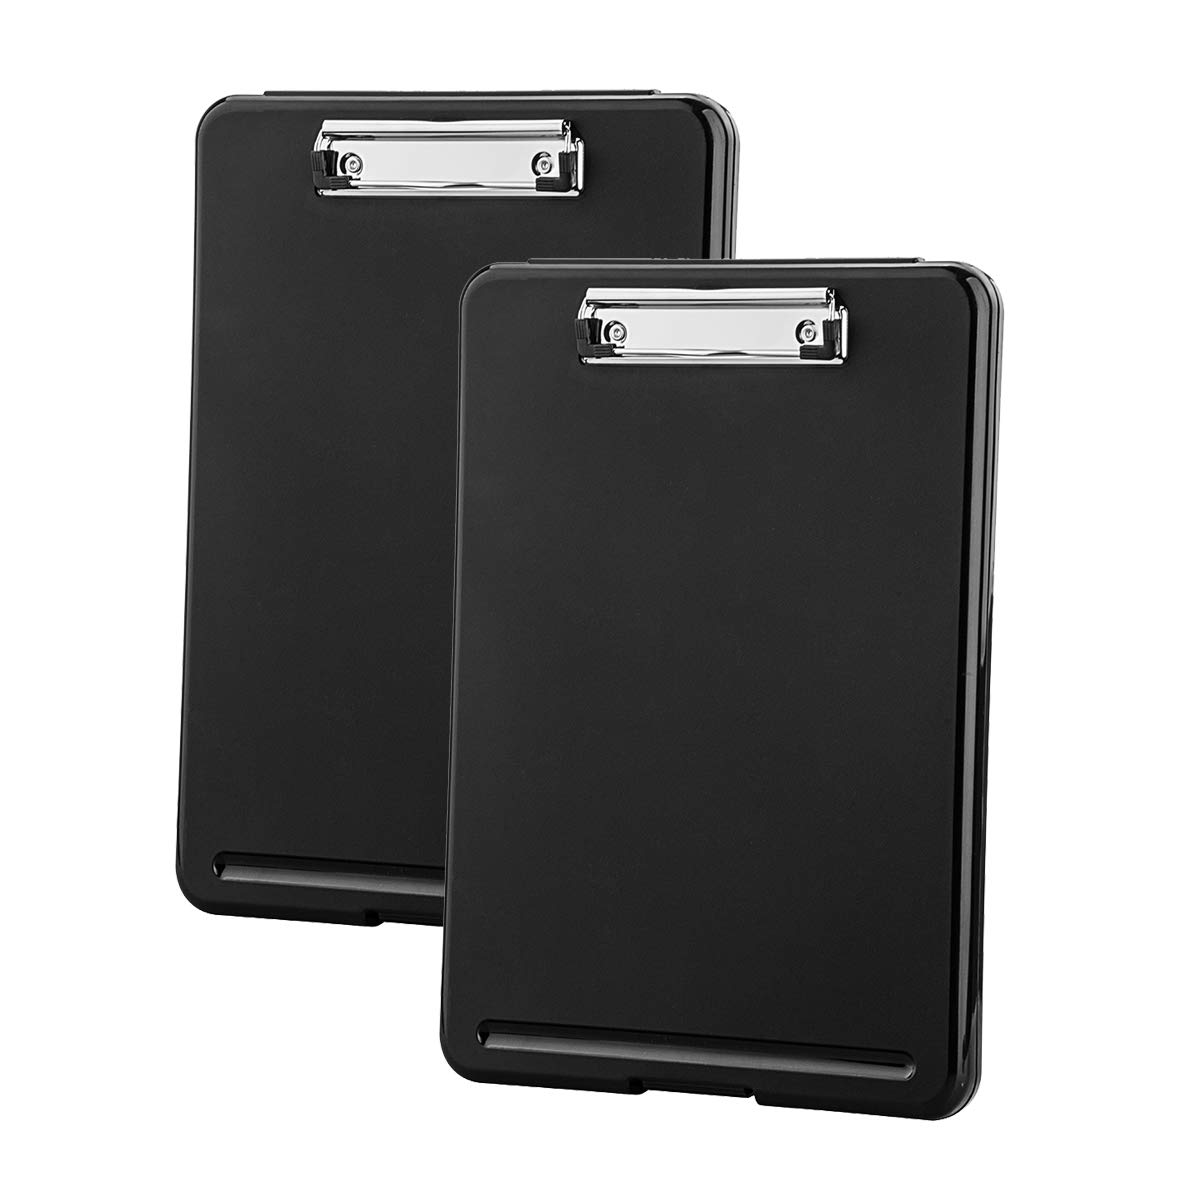 ZCZN Plastic A4 Form Storage Box Case, Black Clipboard Case, Suitable for School, Utility, Industrial Office, Medical Personnel, Set of 2 by ZCZN